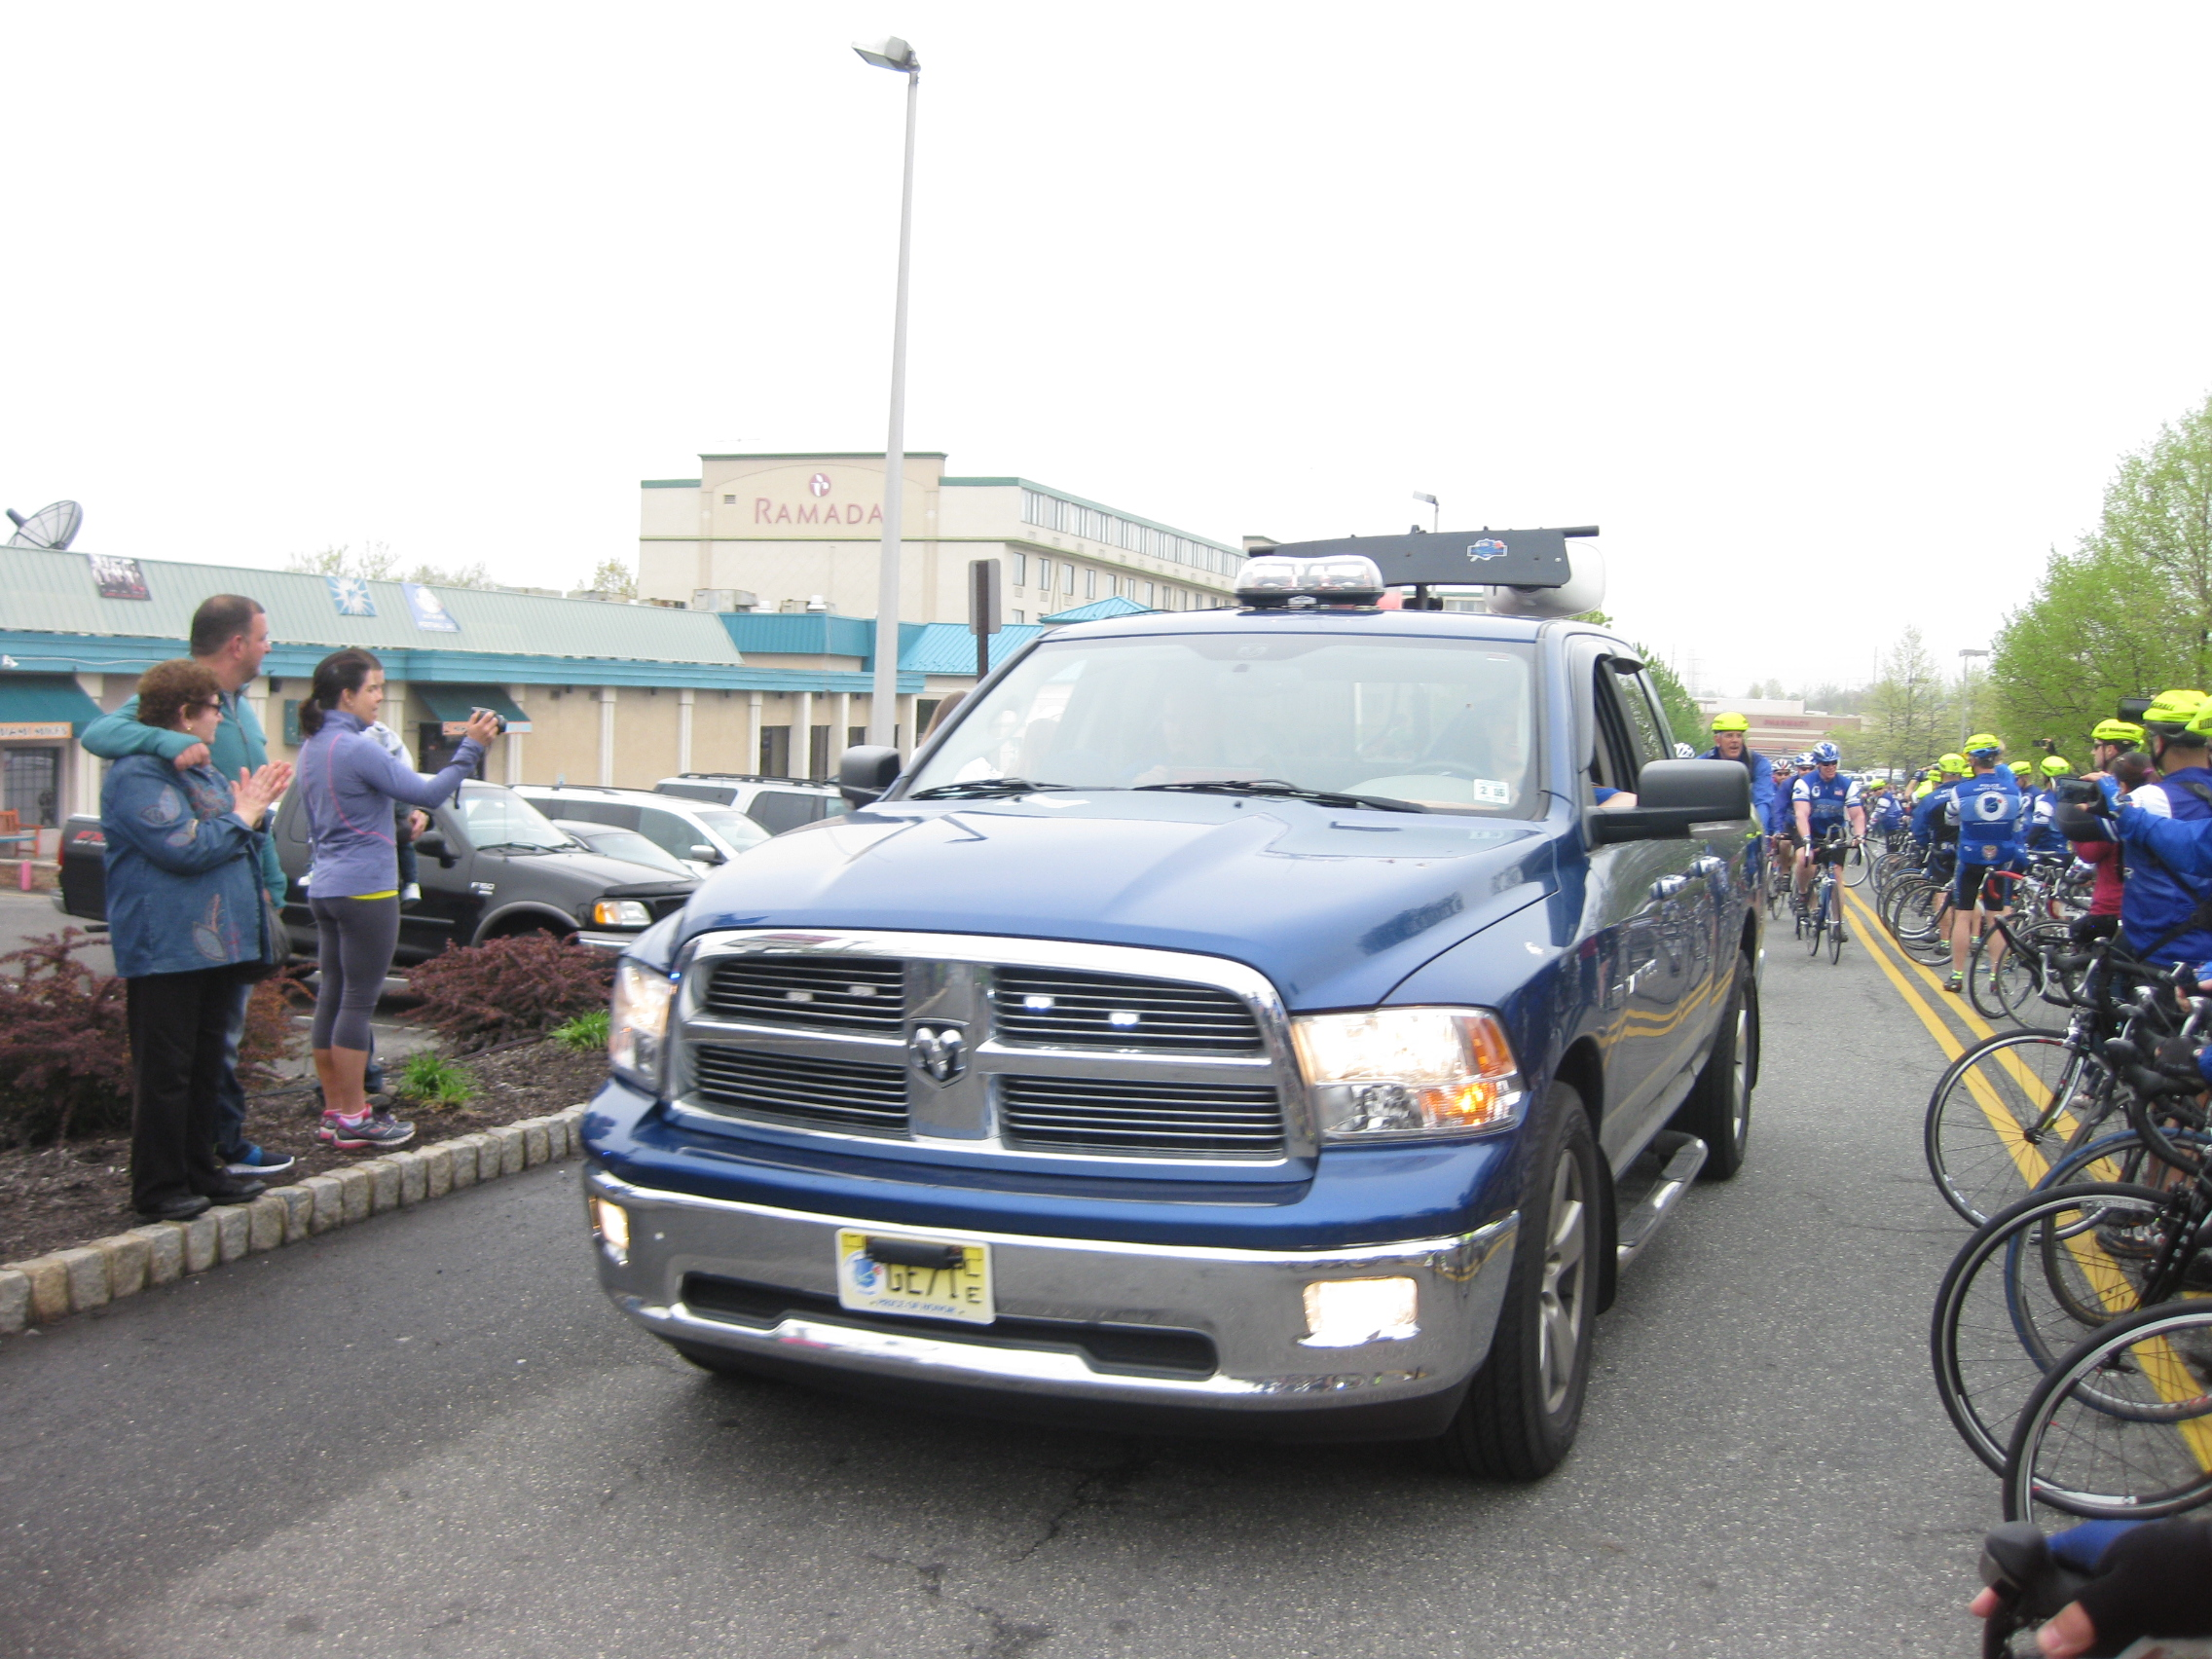 The lead truck of the tour starting the ride on Day 1.